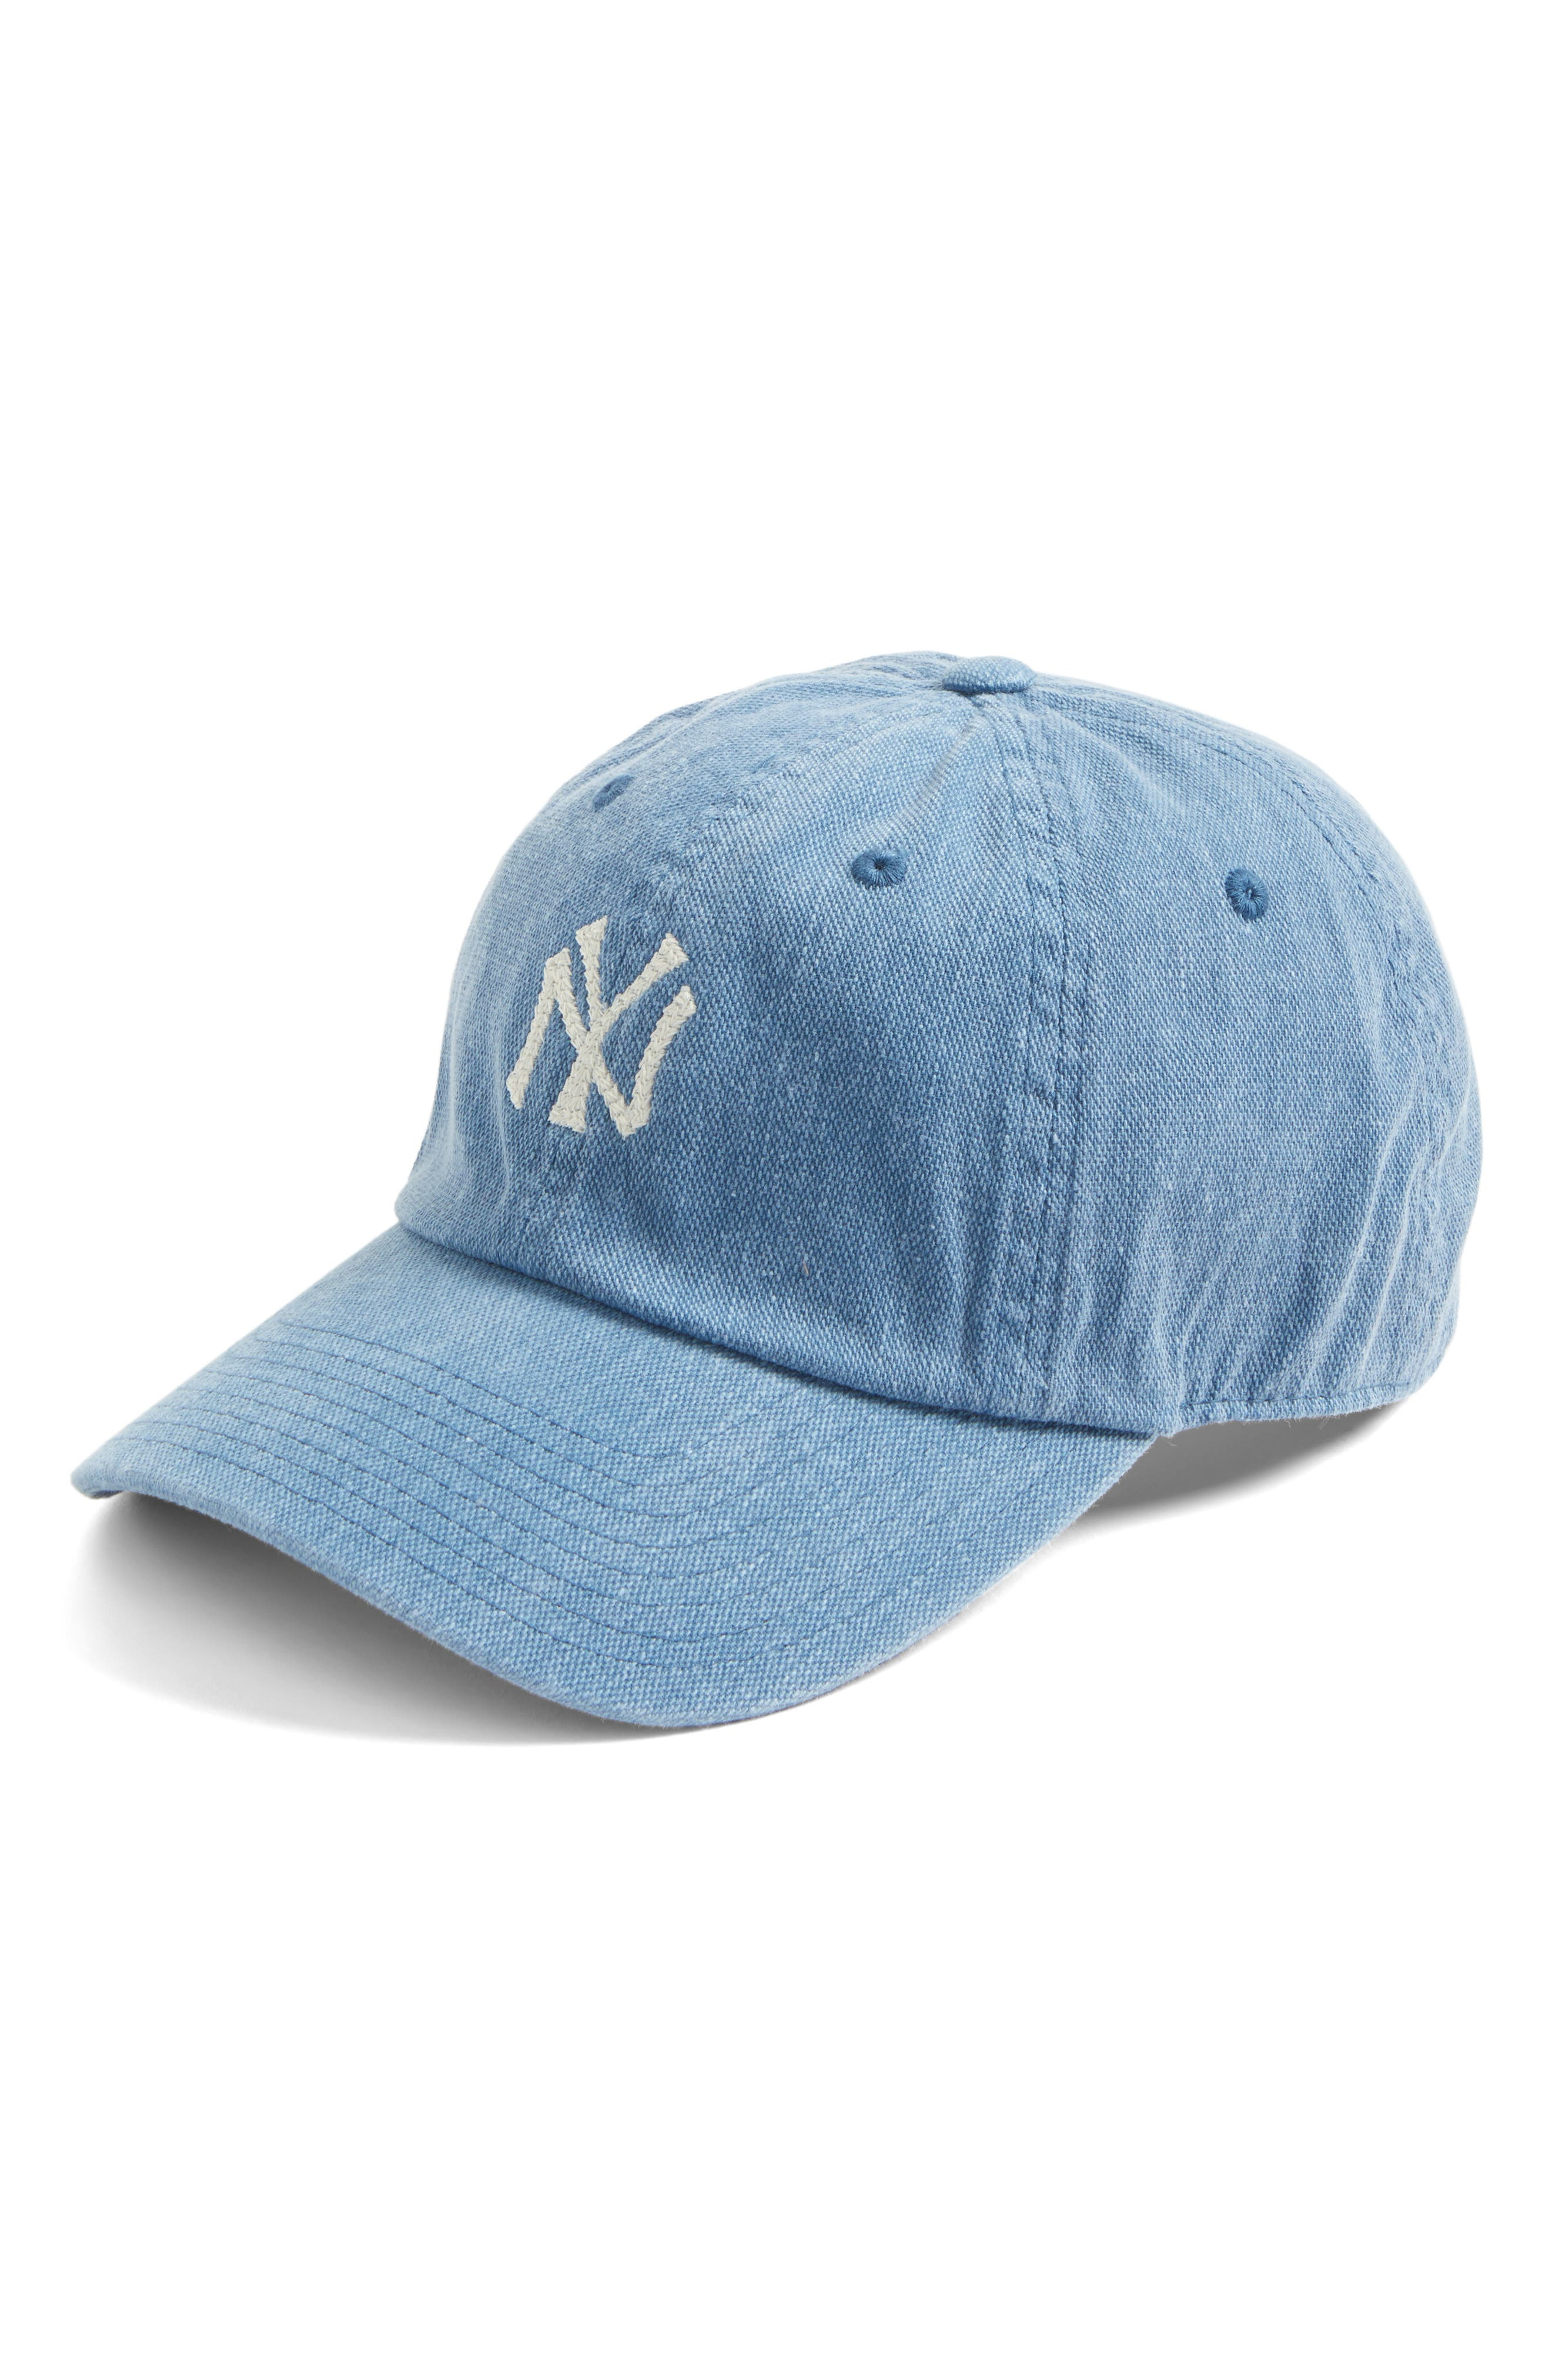 Danbury New York Yankees Baseball Cap,                             Main thumbnail 1, color,